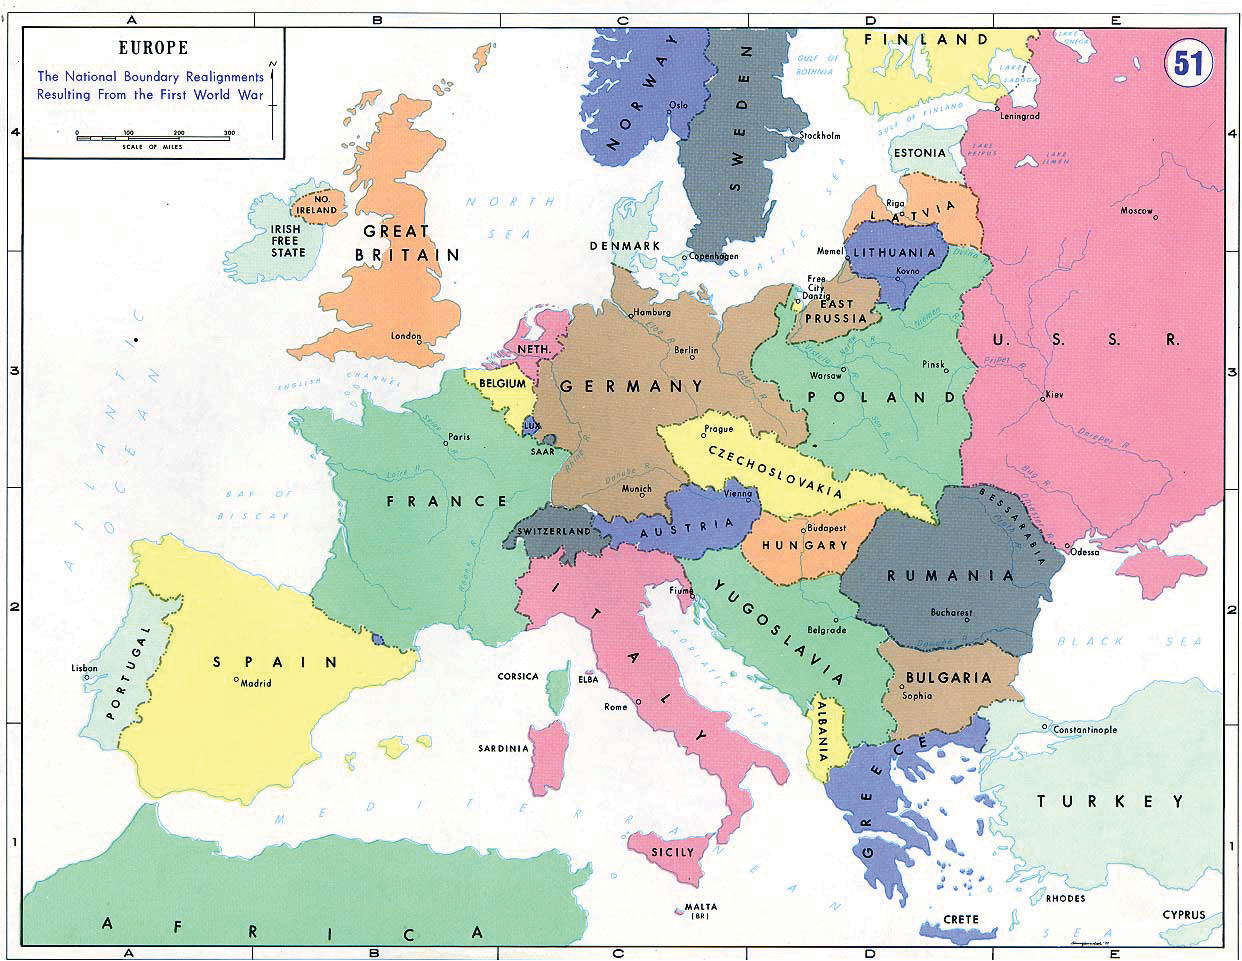 A map of Europe showing the